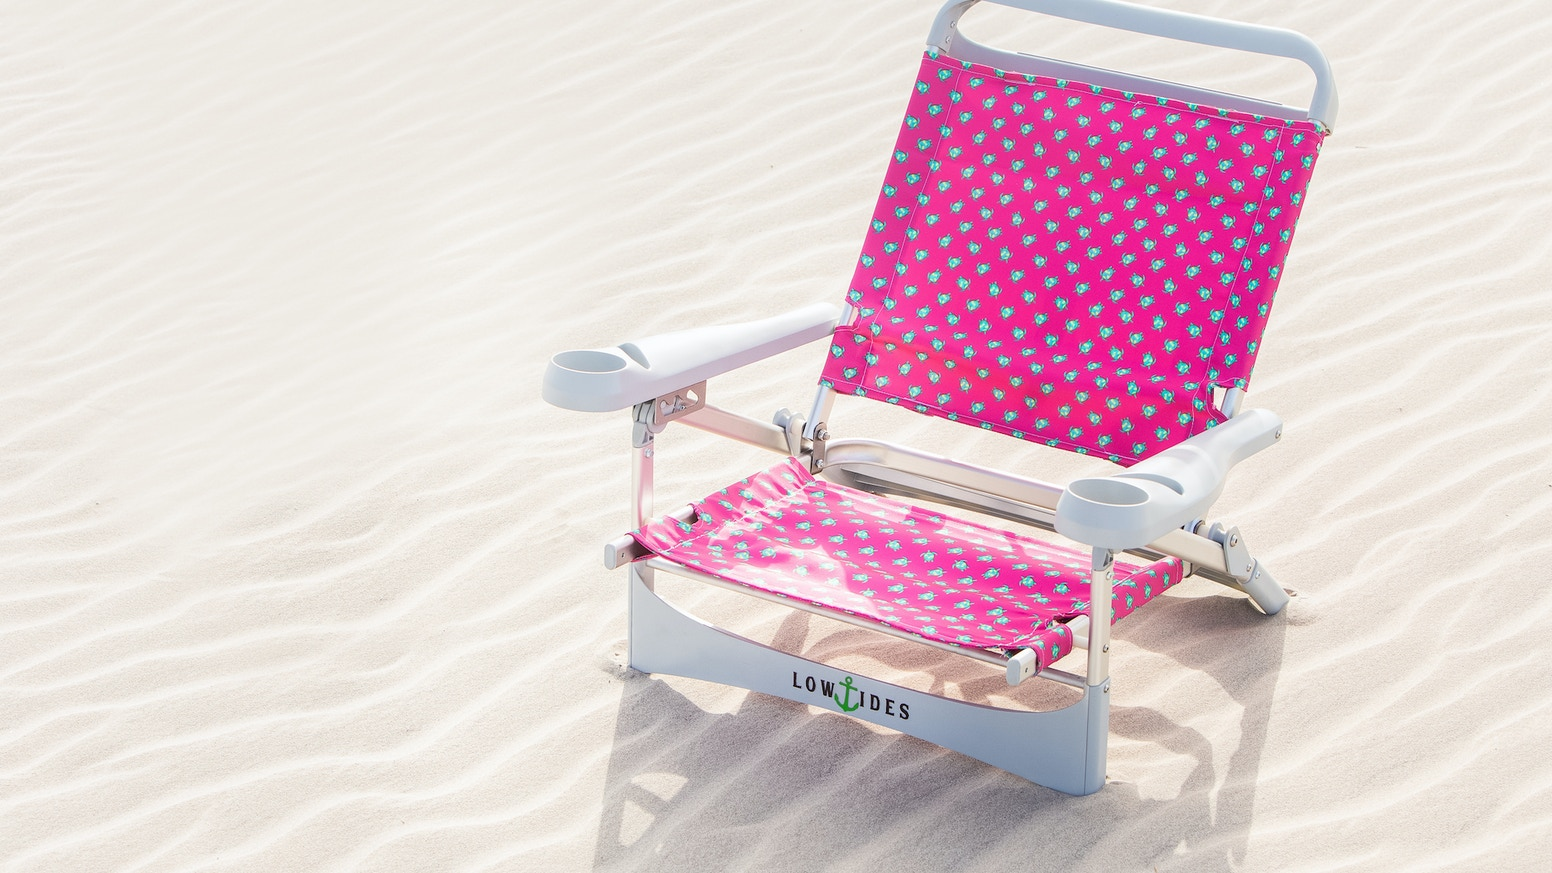 Sit Back, Save the Ocean.  Its simple.  A Beach Chair built with 3 lbs of Ocean Plastics.  Make the change for Cleaner Tides.